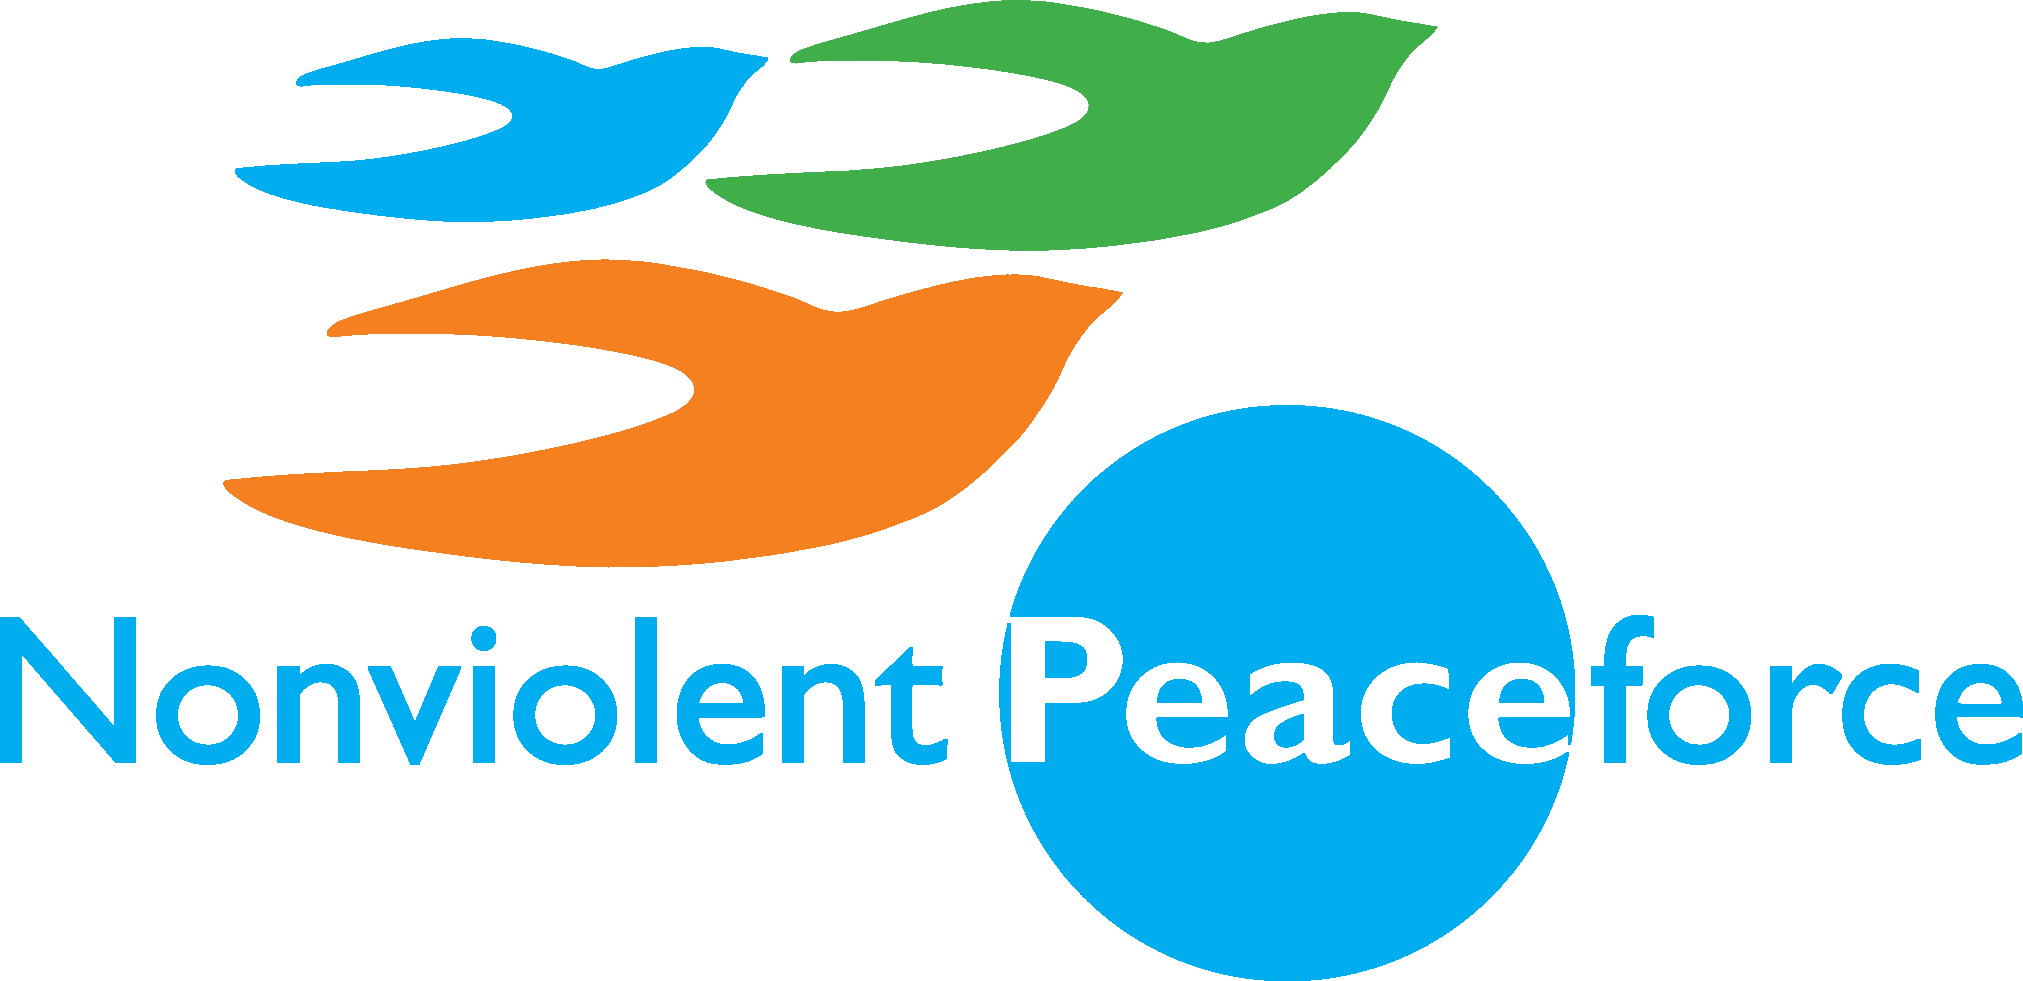 clip free stock Yes clipart peacekeeping. Nonviolent peaceforce guidestar profile.